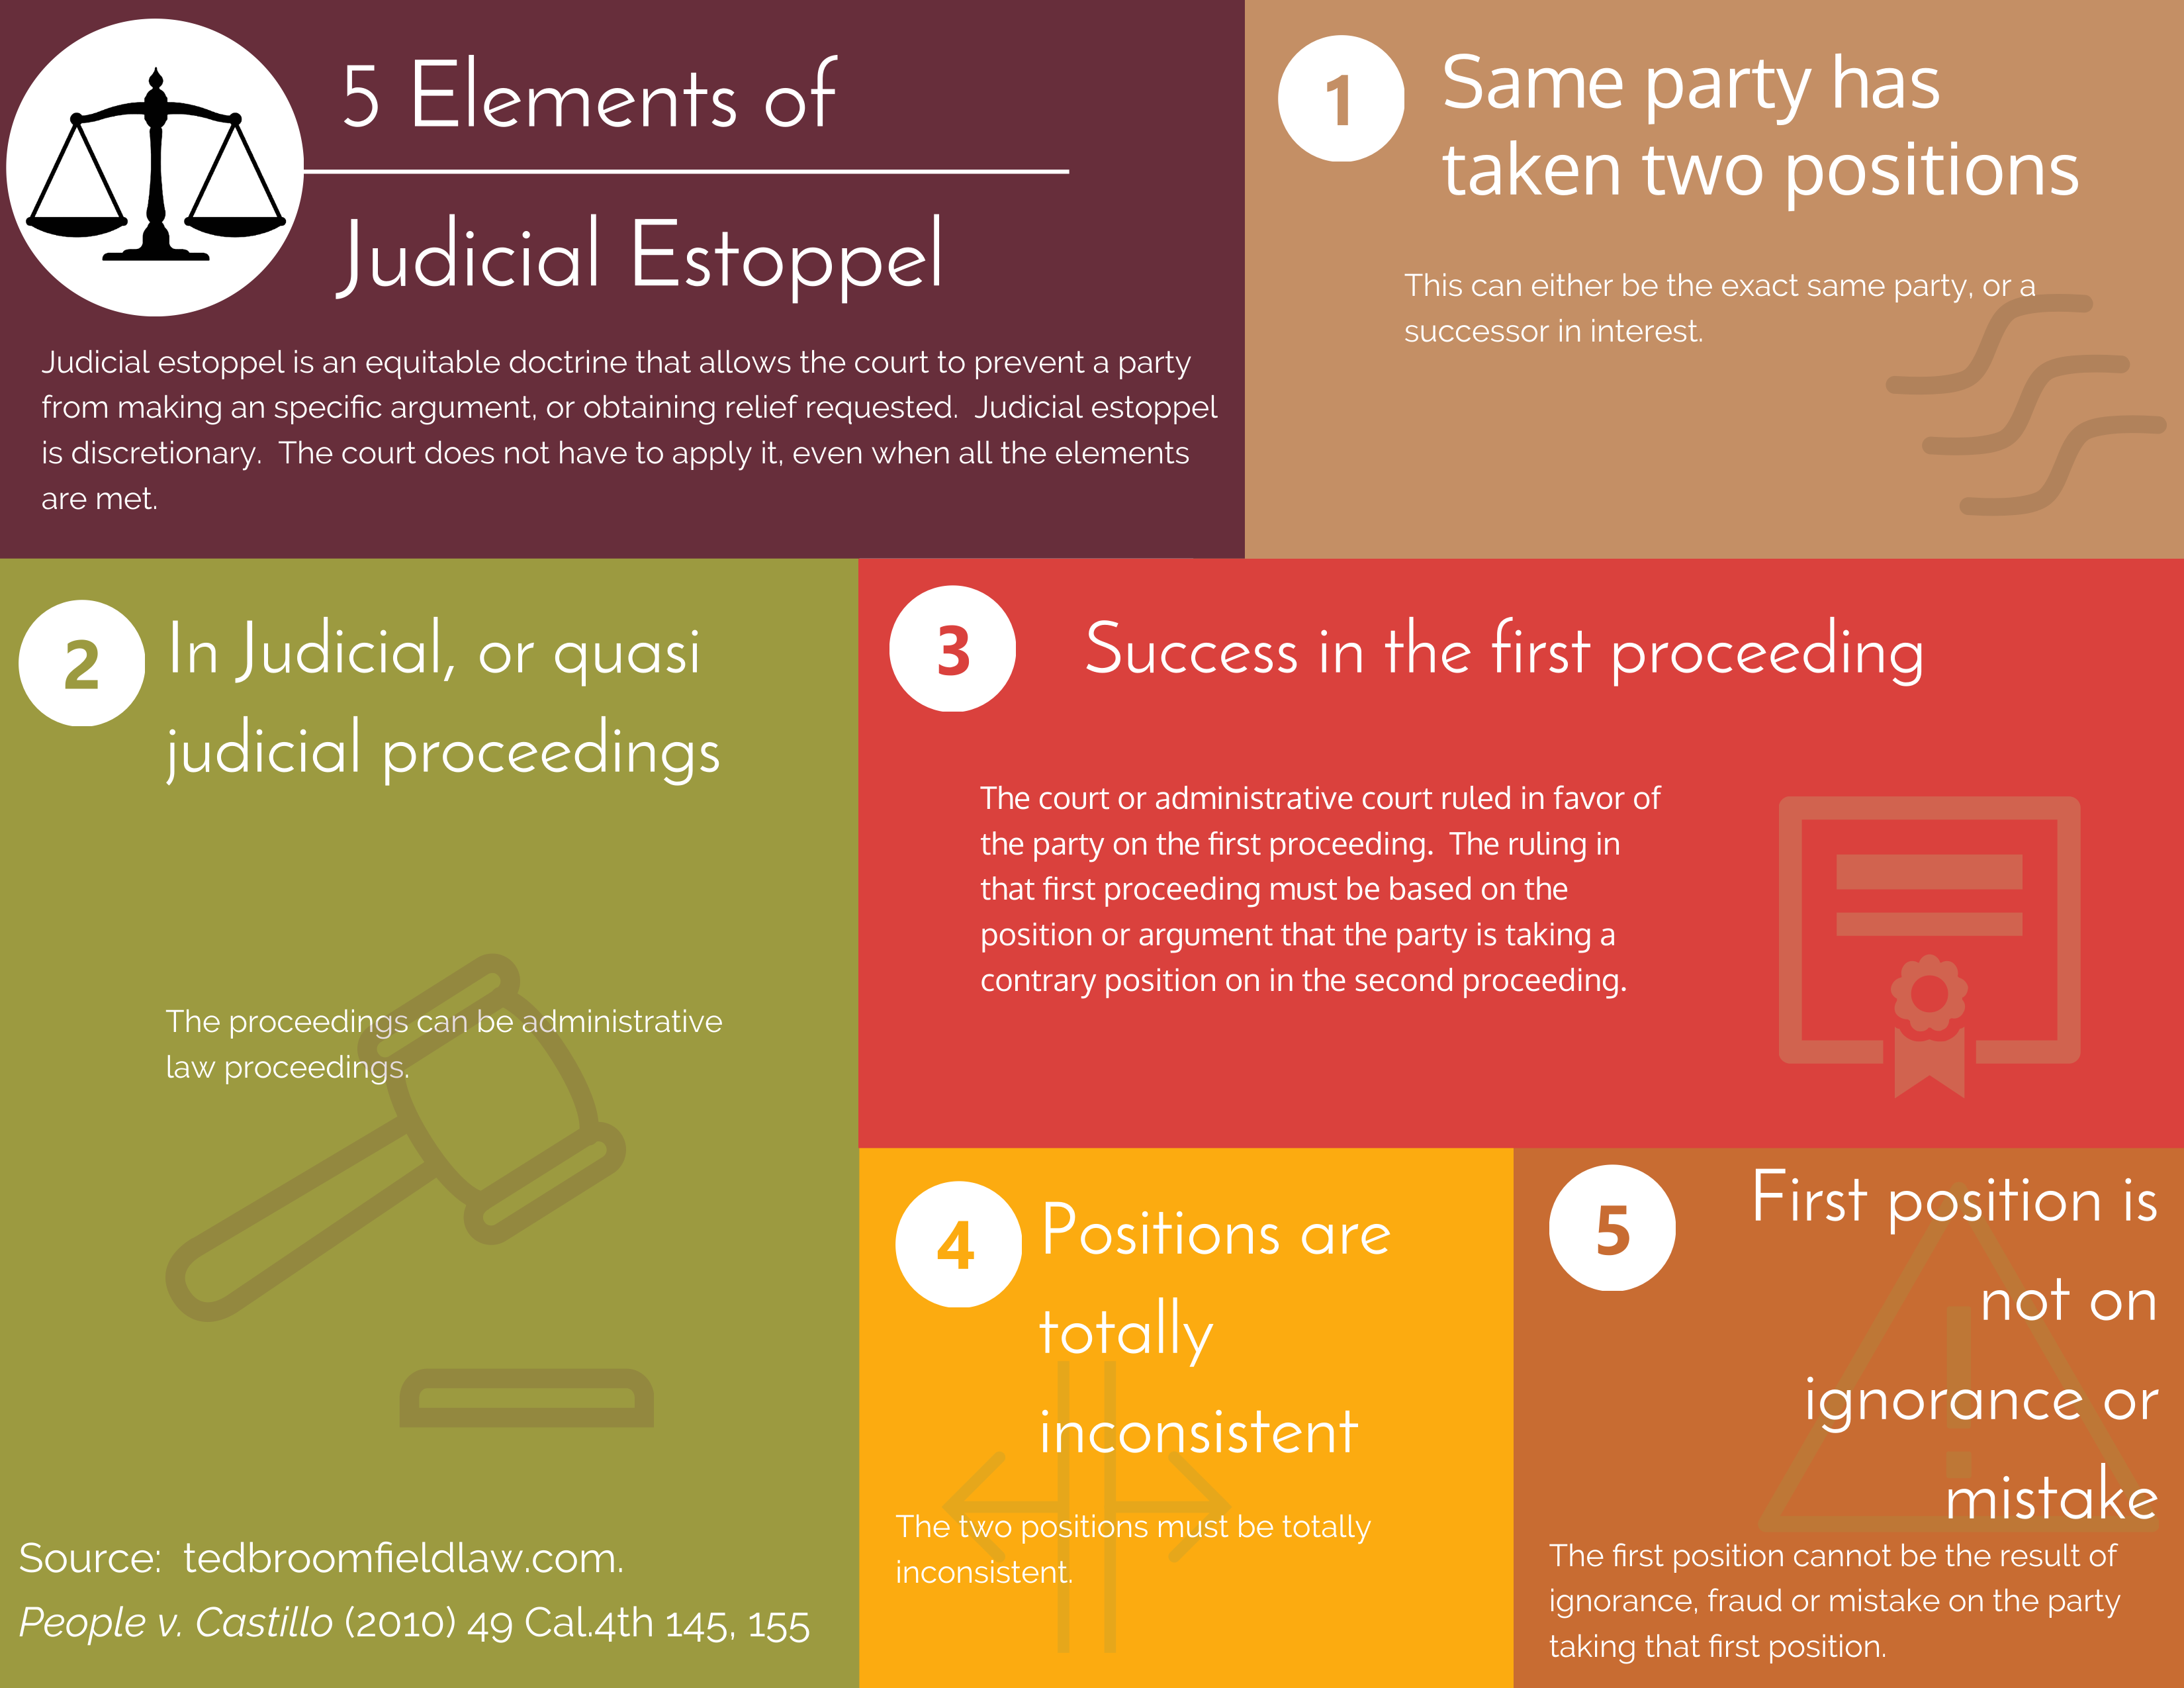 5 elements of judicial estoppel.